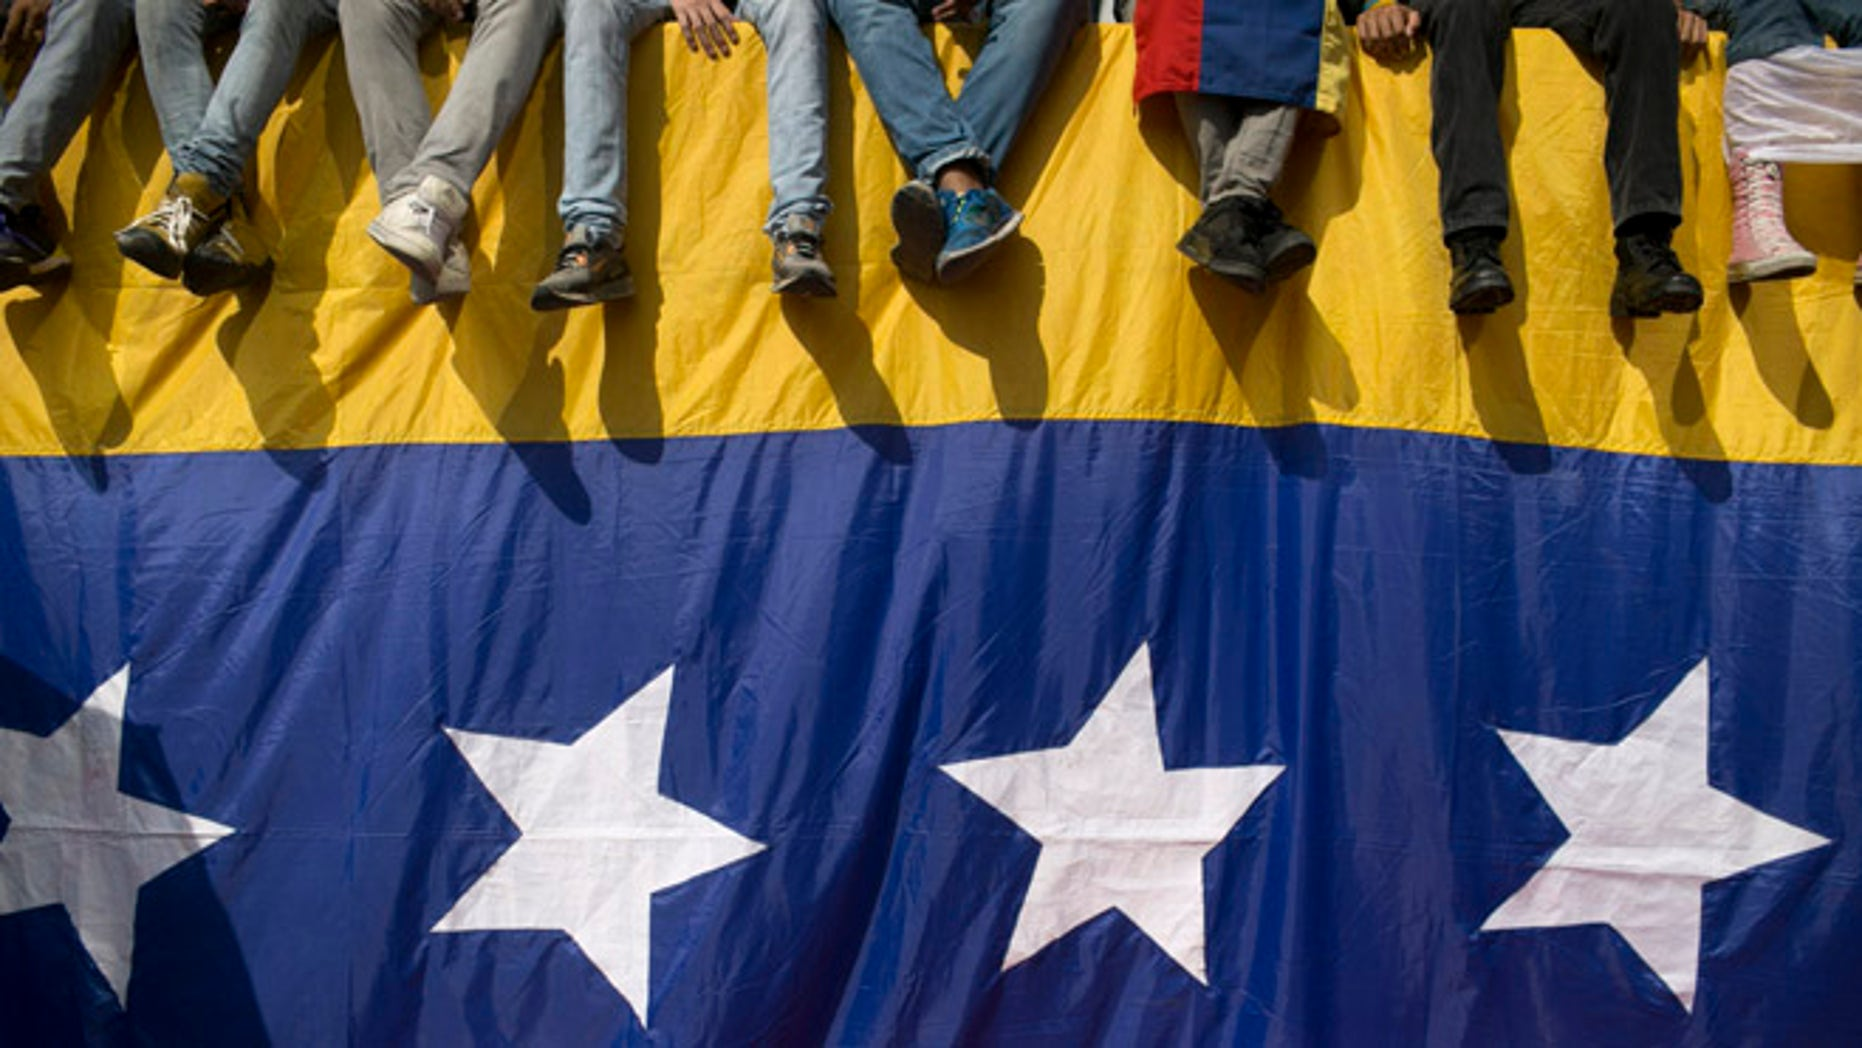 People sit on a wall draped by a Venezuelan flag during a protest against President Nicolas Maduro in Caracas, Venezuela, Wednesday, Oct. 26, 2016. Venezuela's standoff deepened after congress voted to open a political trial against Maduro for breaking the constitutional order and opposition leaders called for mass demonstrations on Wednesday to drive the leader from office. (AP Photo/Alejandro Cegarra)